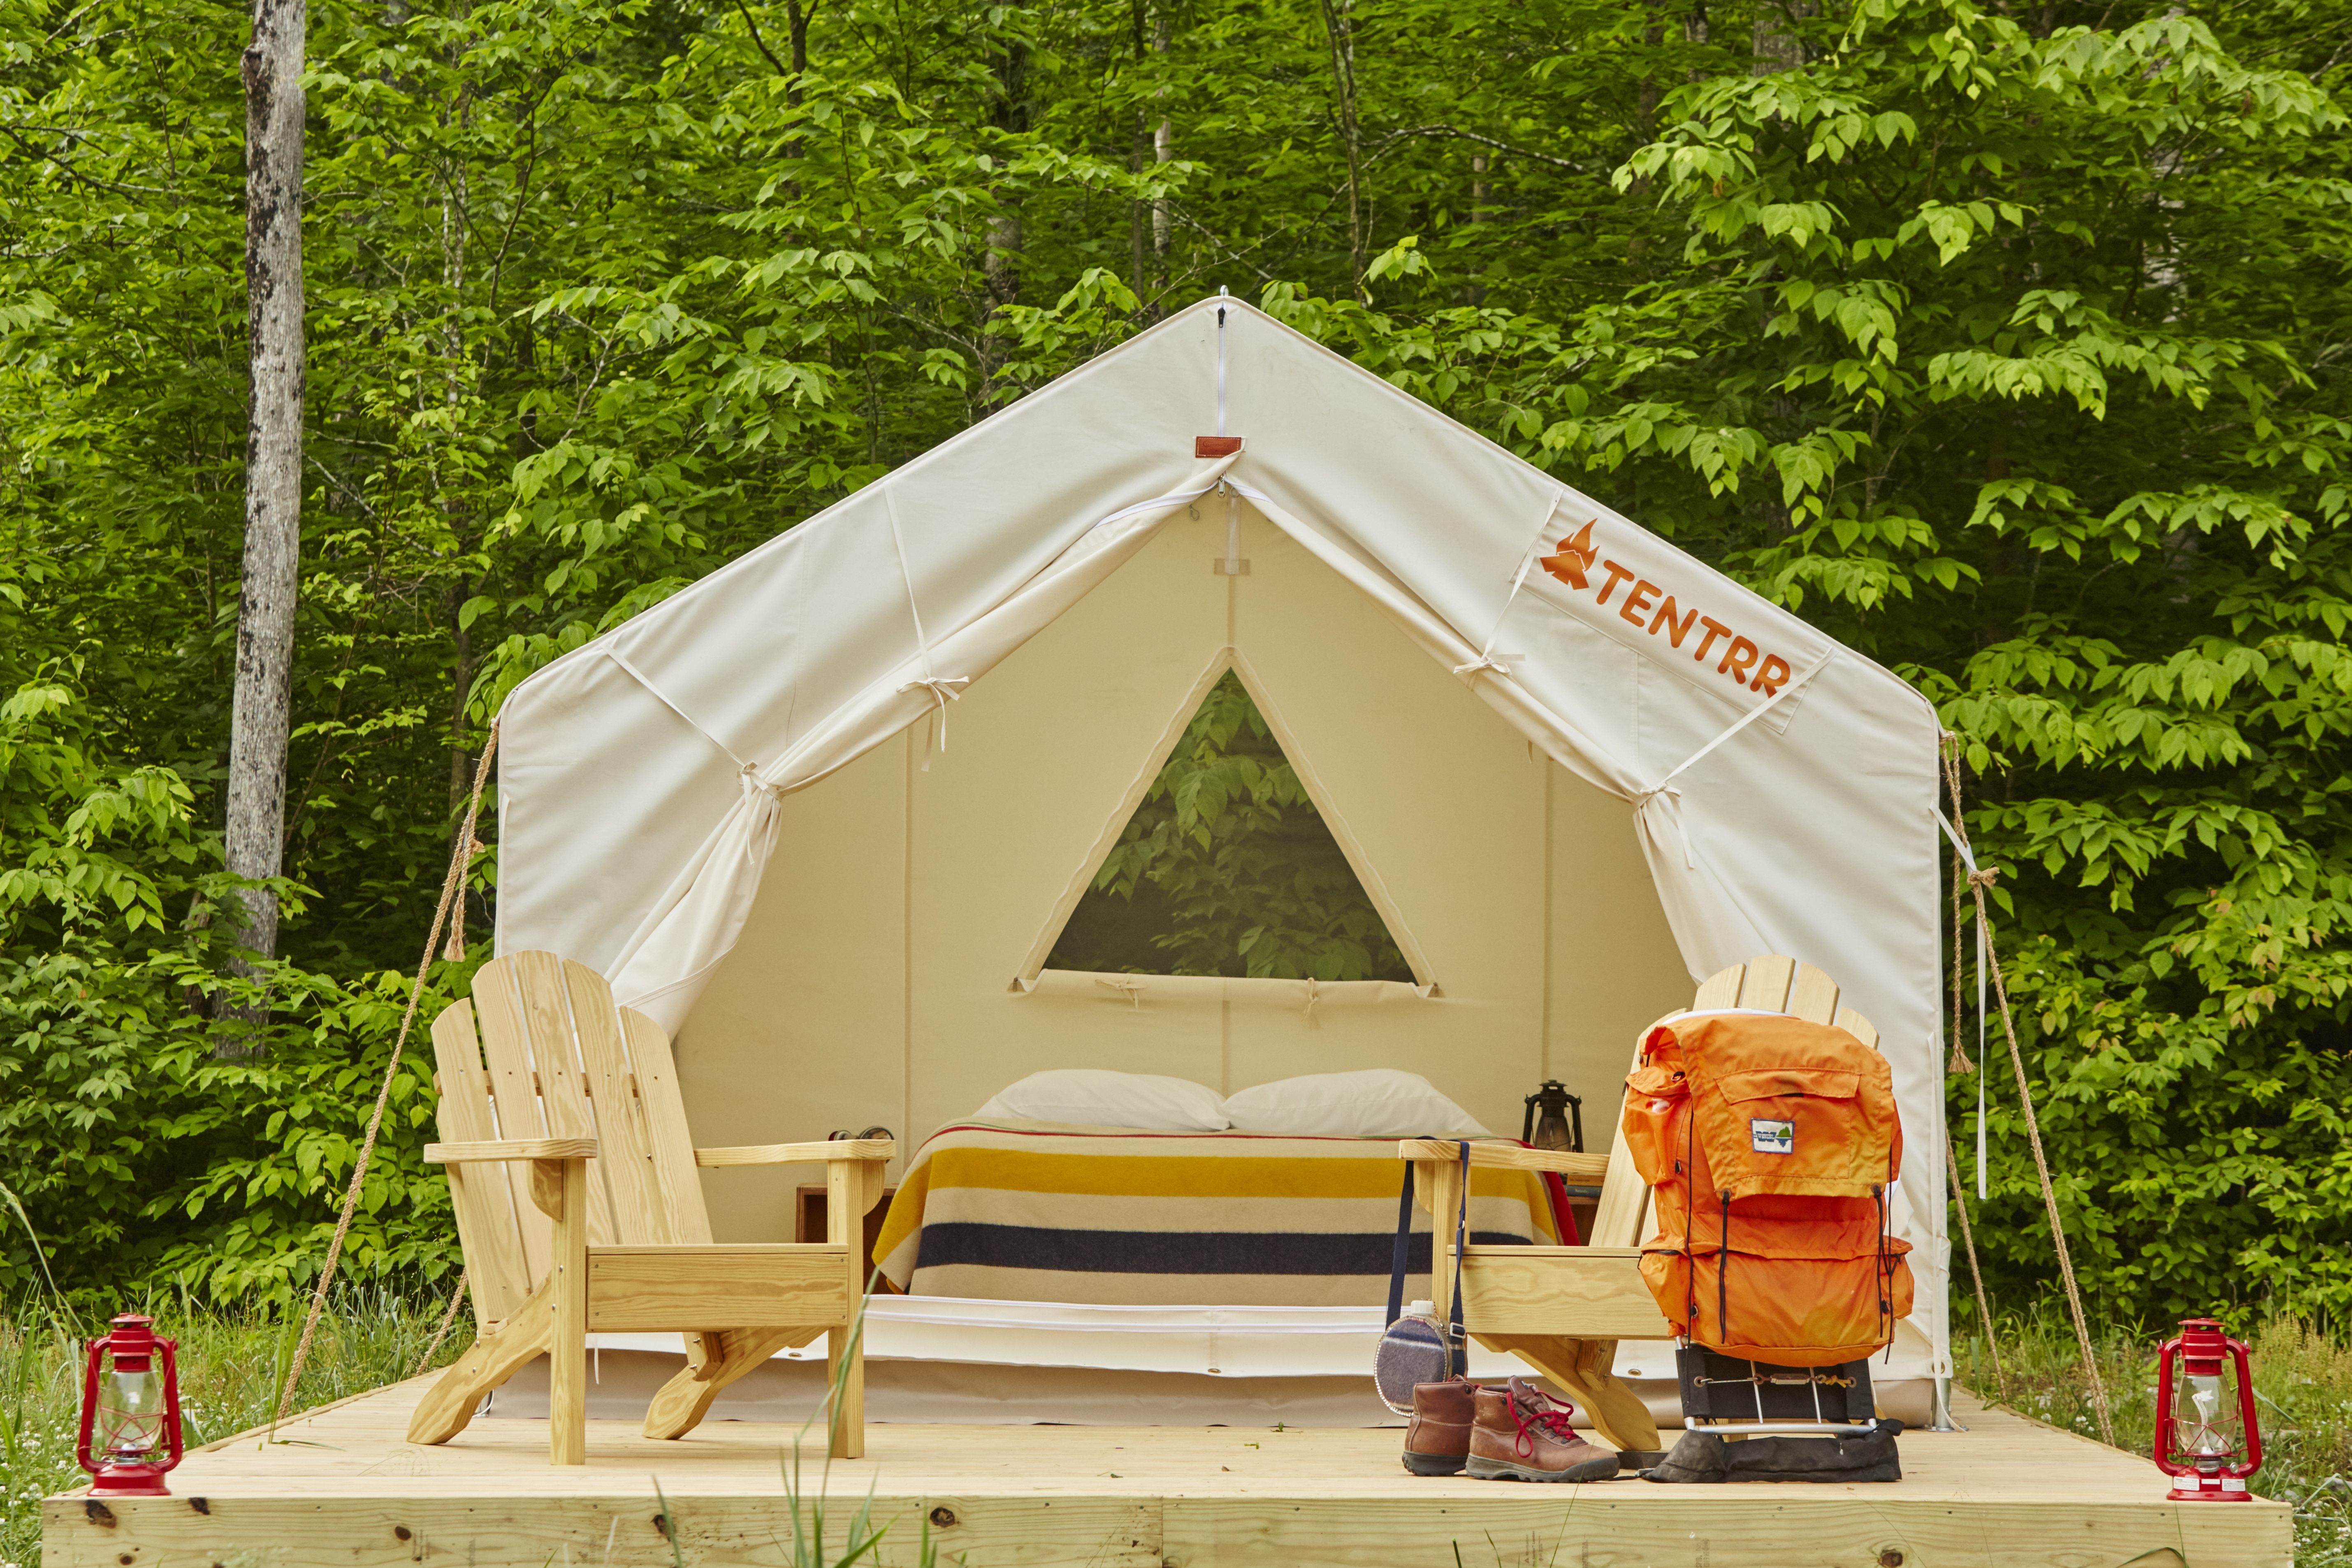 A Tentrr tent complete with bed, chairs and amenities for camping